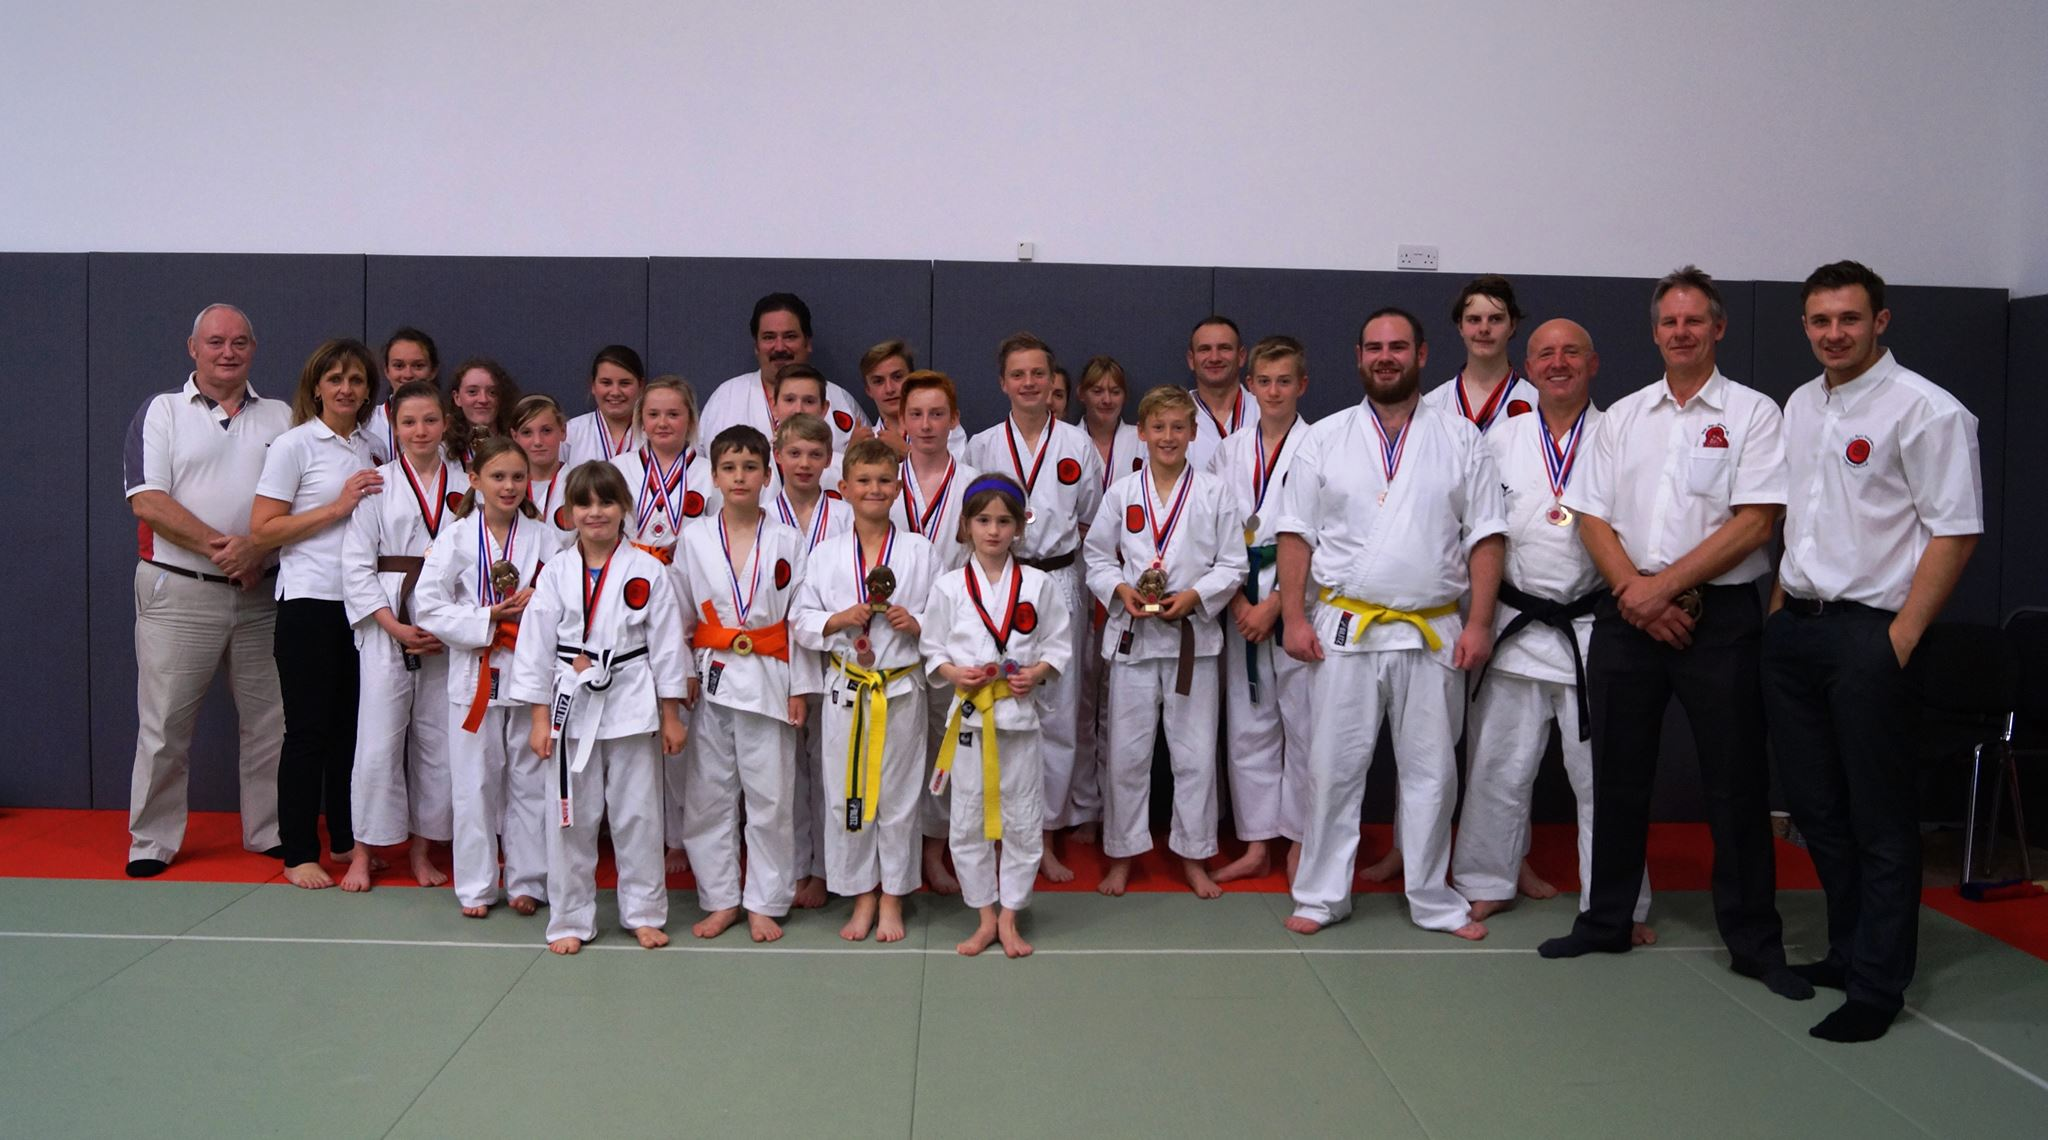 Chichester Karate club team photo